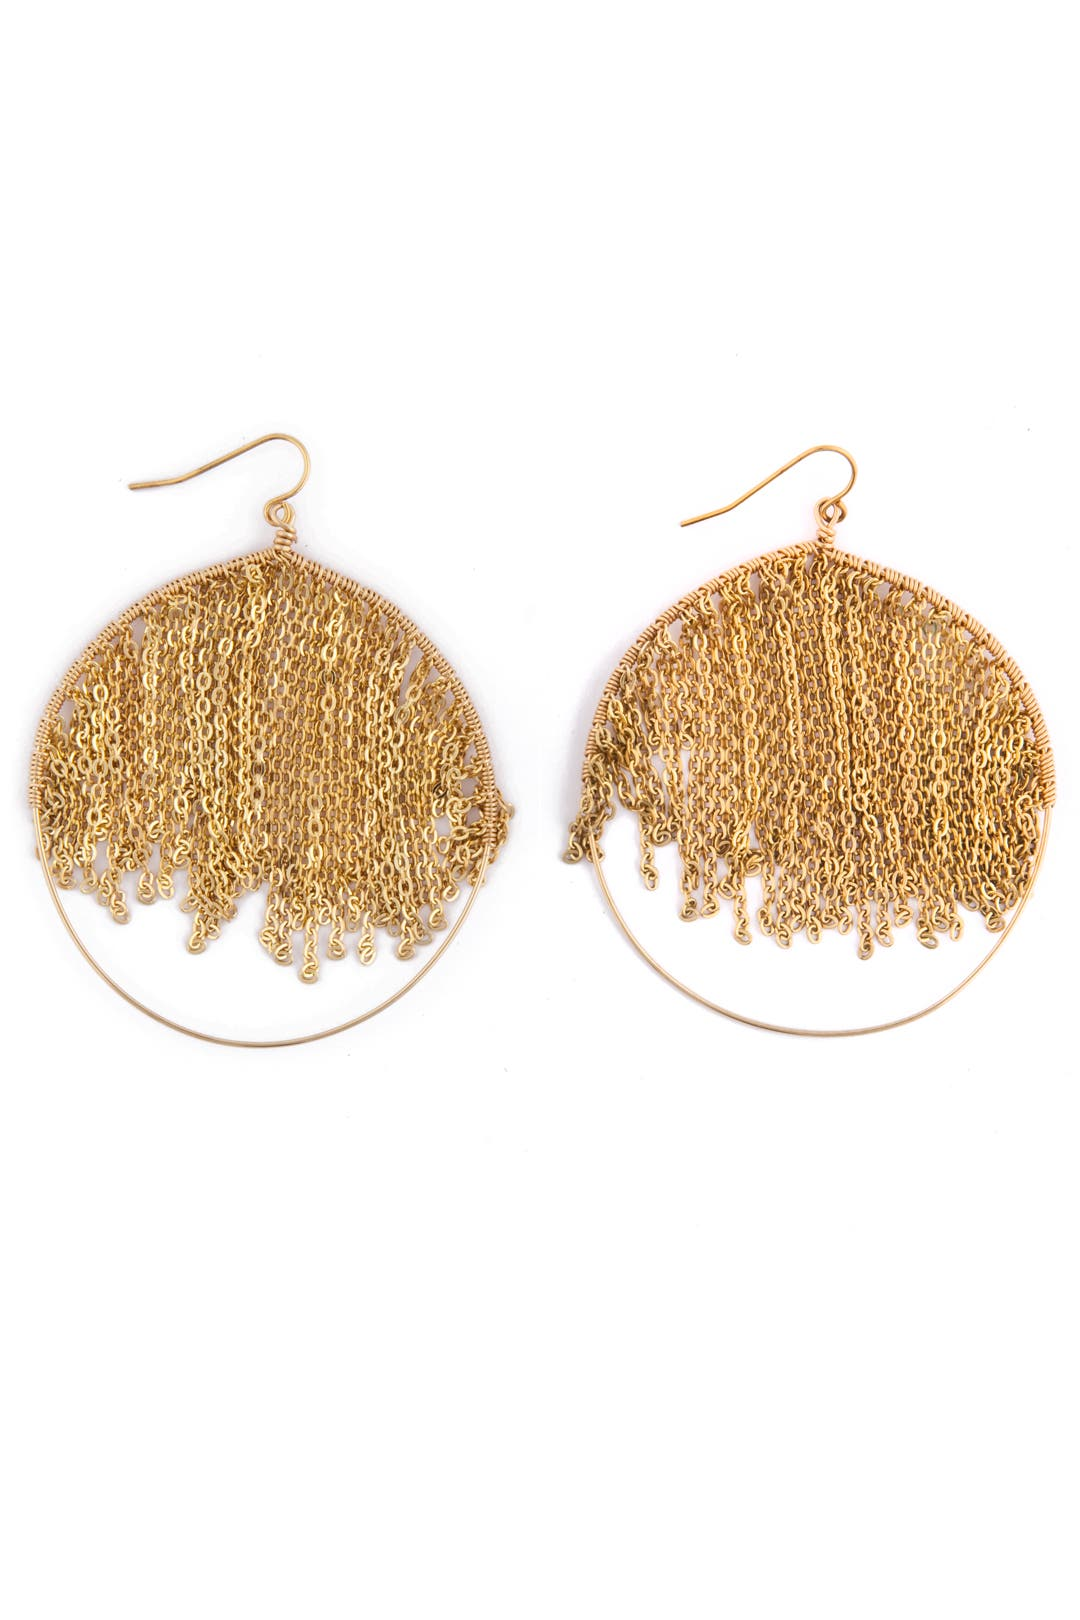 Gold Rain Earrings by Citrine by the Stones